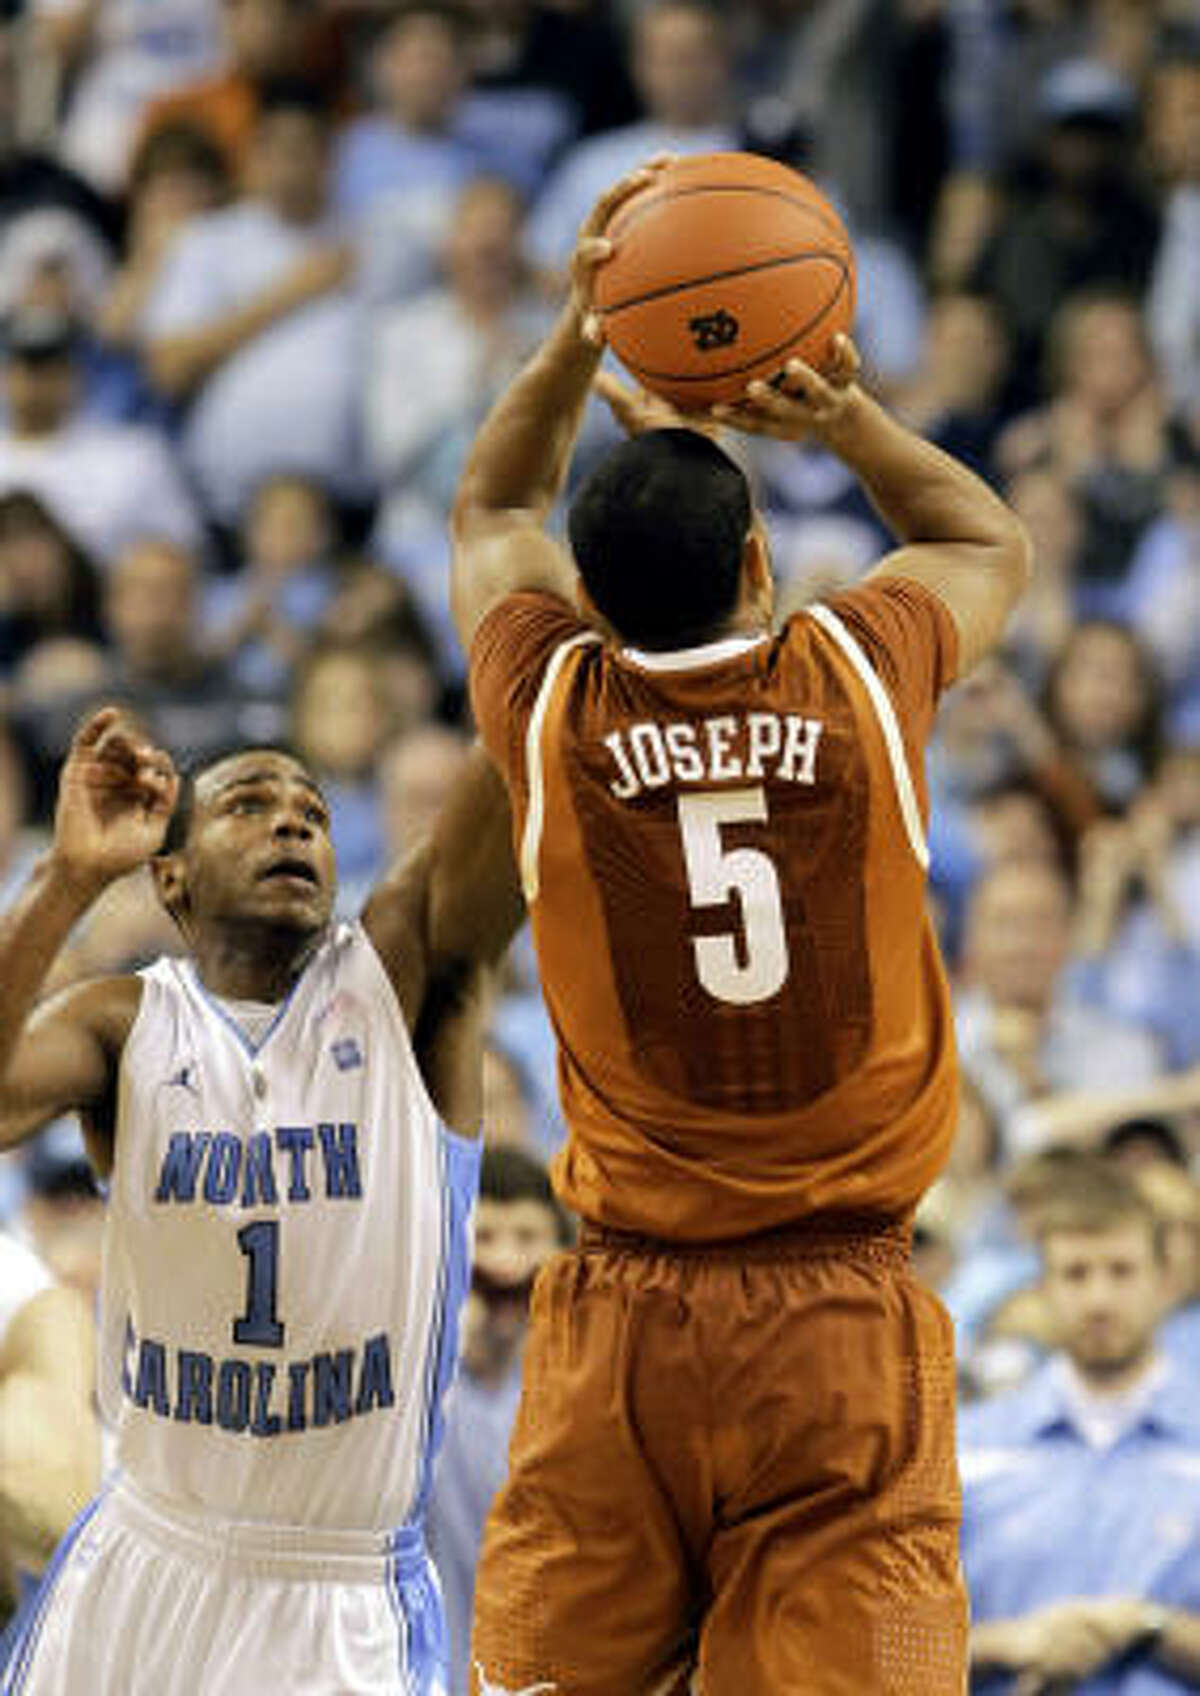 Texas guard Cory Joseph takes the game-winning shot as North Carolina guard Dexter Strickland defends in the final seconds on Saturday.